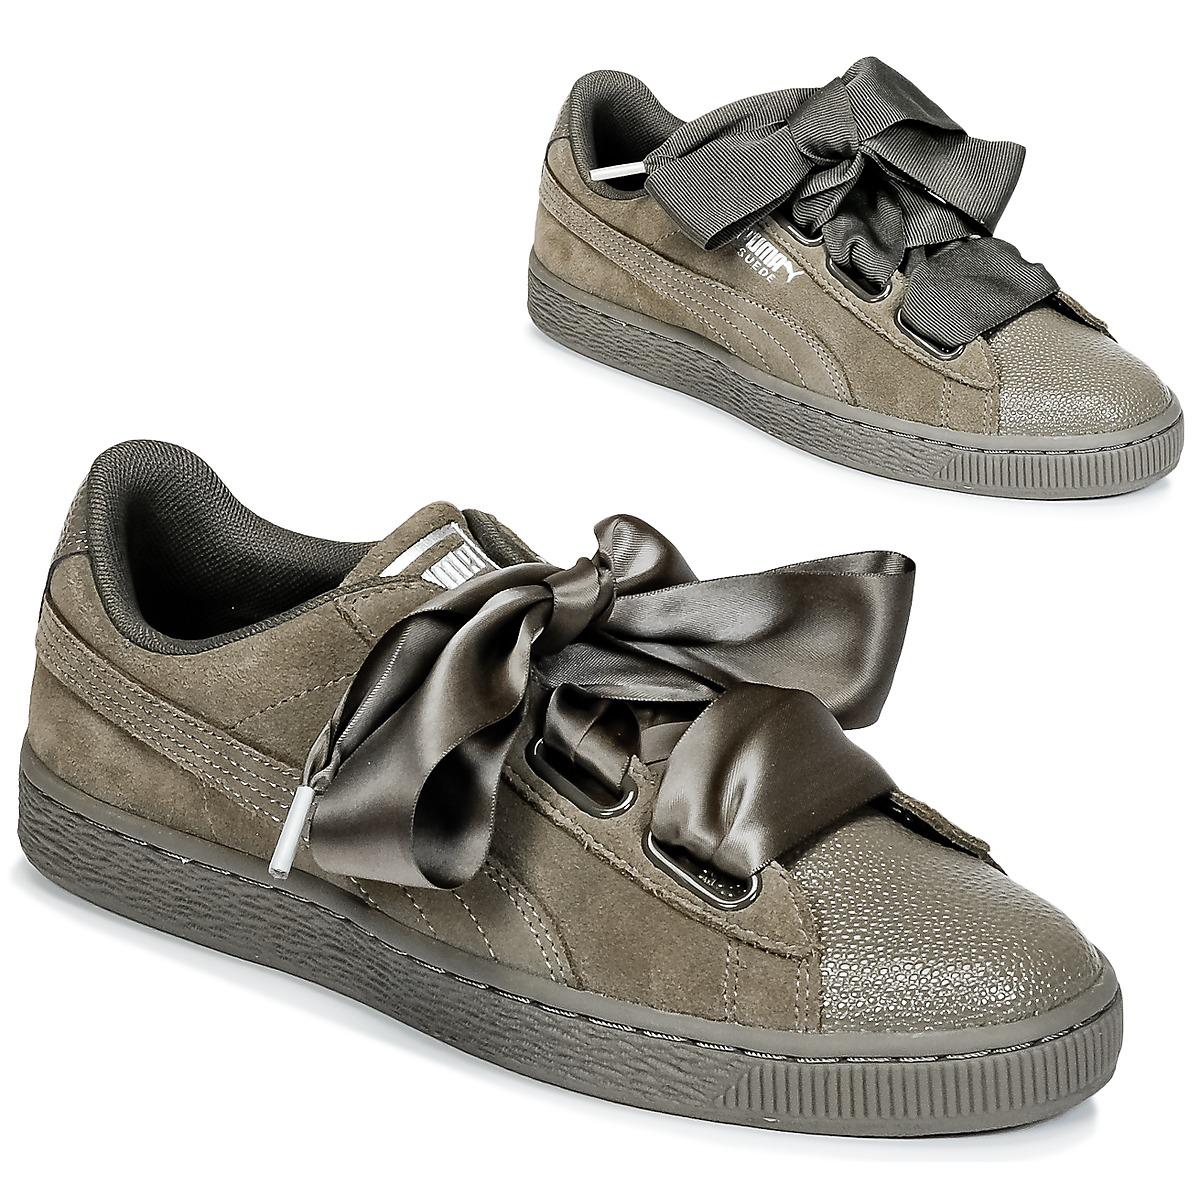 506b84c76f9821 PUMA Suede Heart Bubble W s Shoes (trainers) in Green - Save 12% - Lyst